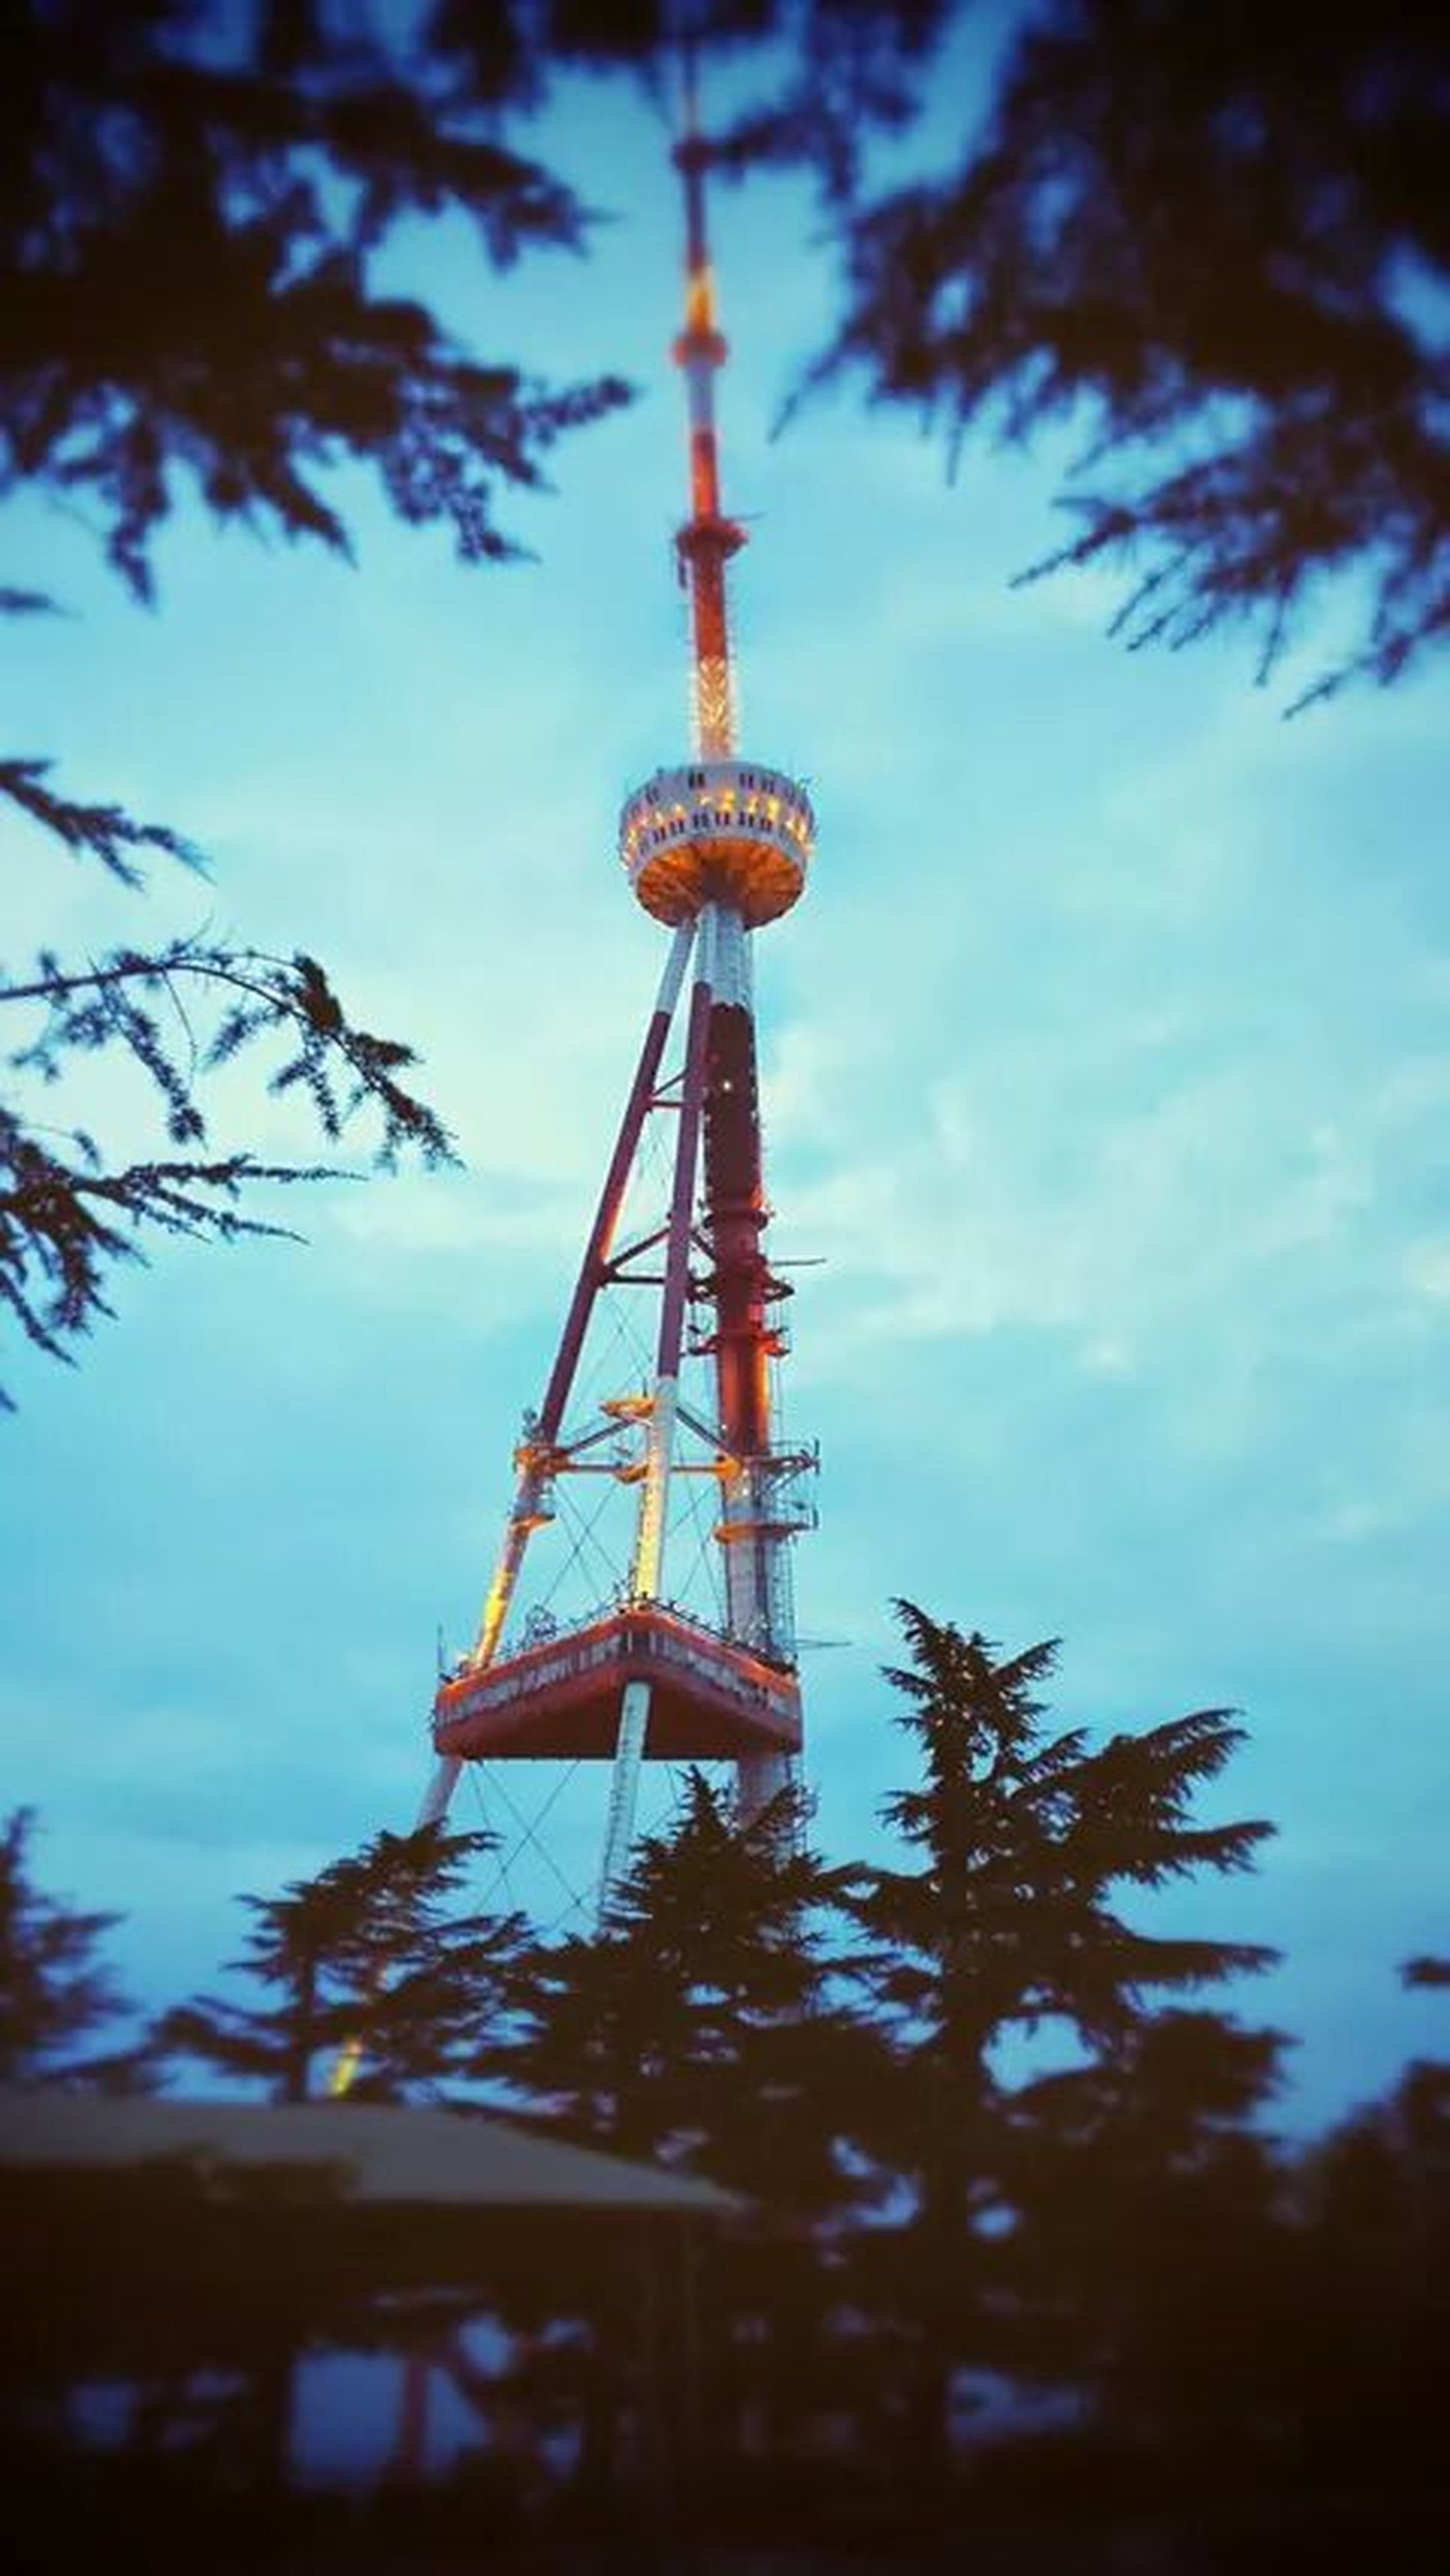 tower, tall - high, communications tower, tree, sky, low angle view, famous place, tourism, travel destinations, international landmark, built structure, architecture, capital cities, travel, communication, spire, sphere, fernsehturm, eiffel tower, dusk